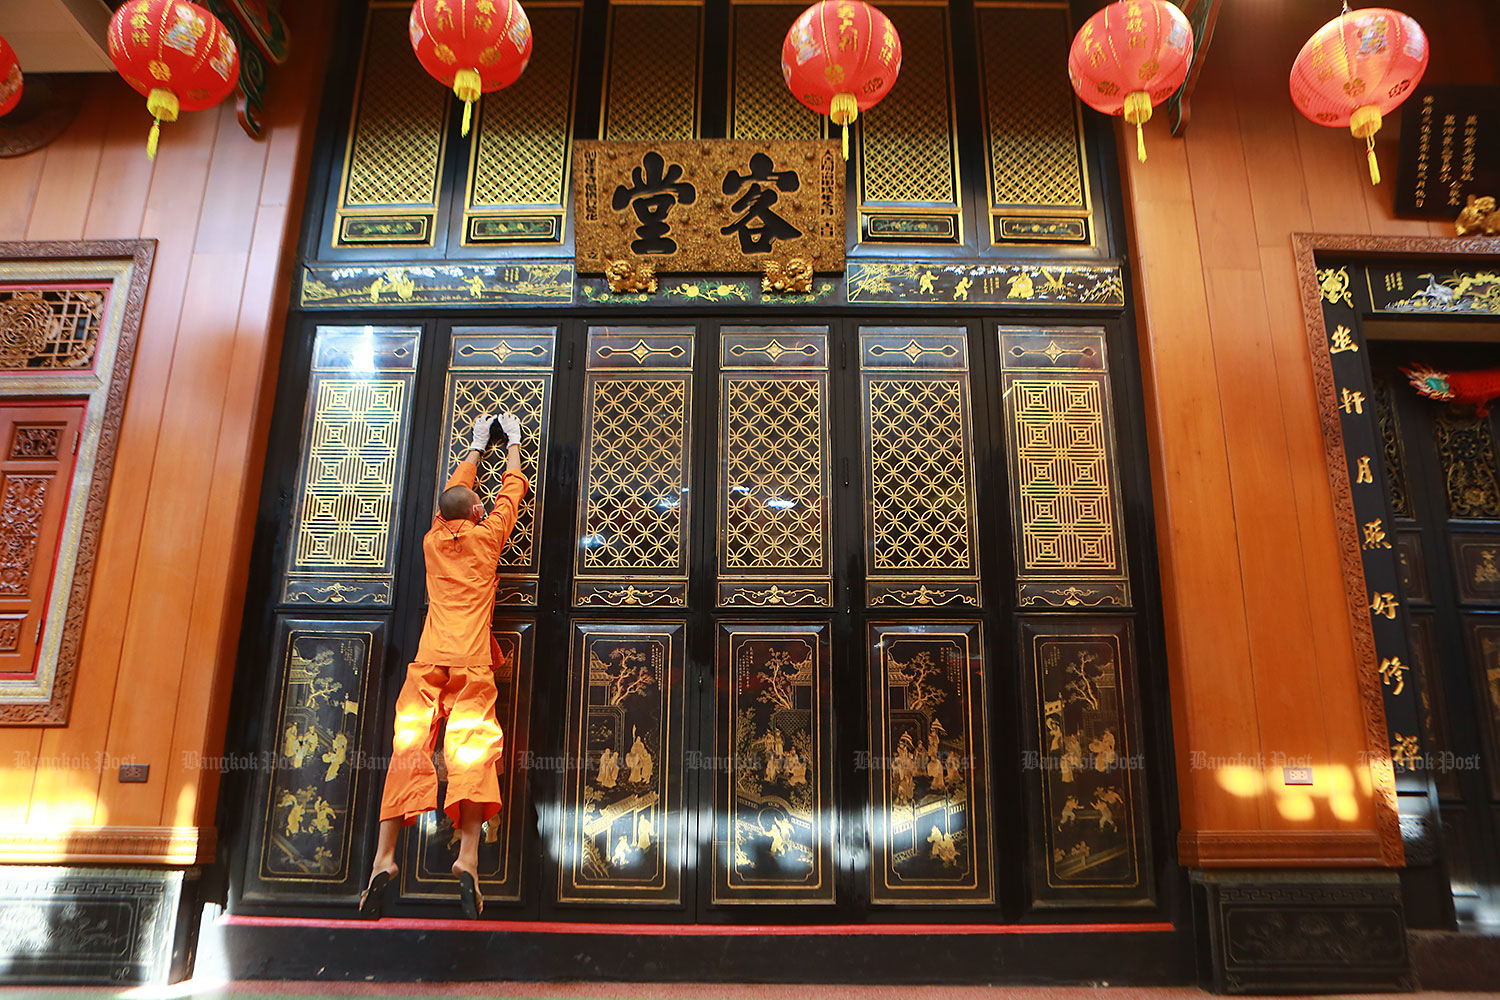 Clean and stretch: A novice jumps to clean door panels at Wat Mangkon Kamalawat in Bangkok's Yaowarat area. The Chinese temple is closed every Friday for a deep cleaning and disinfection of the premises to help curb the spread of Covid-19. (Photo by Somchai Poomlard)